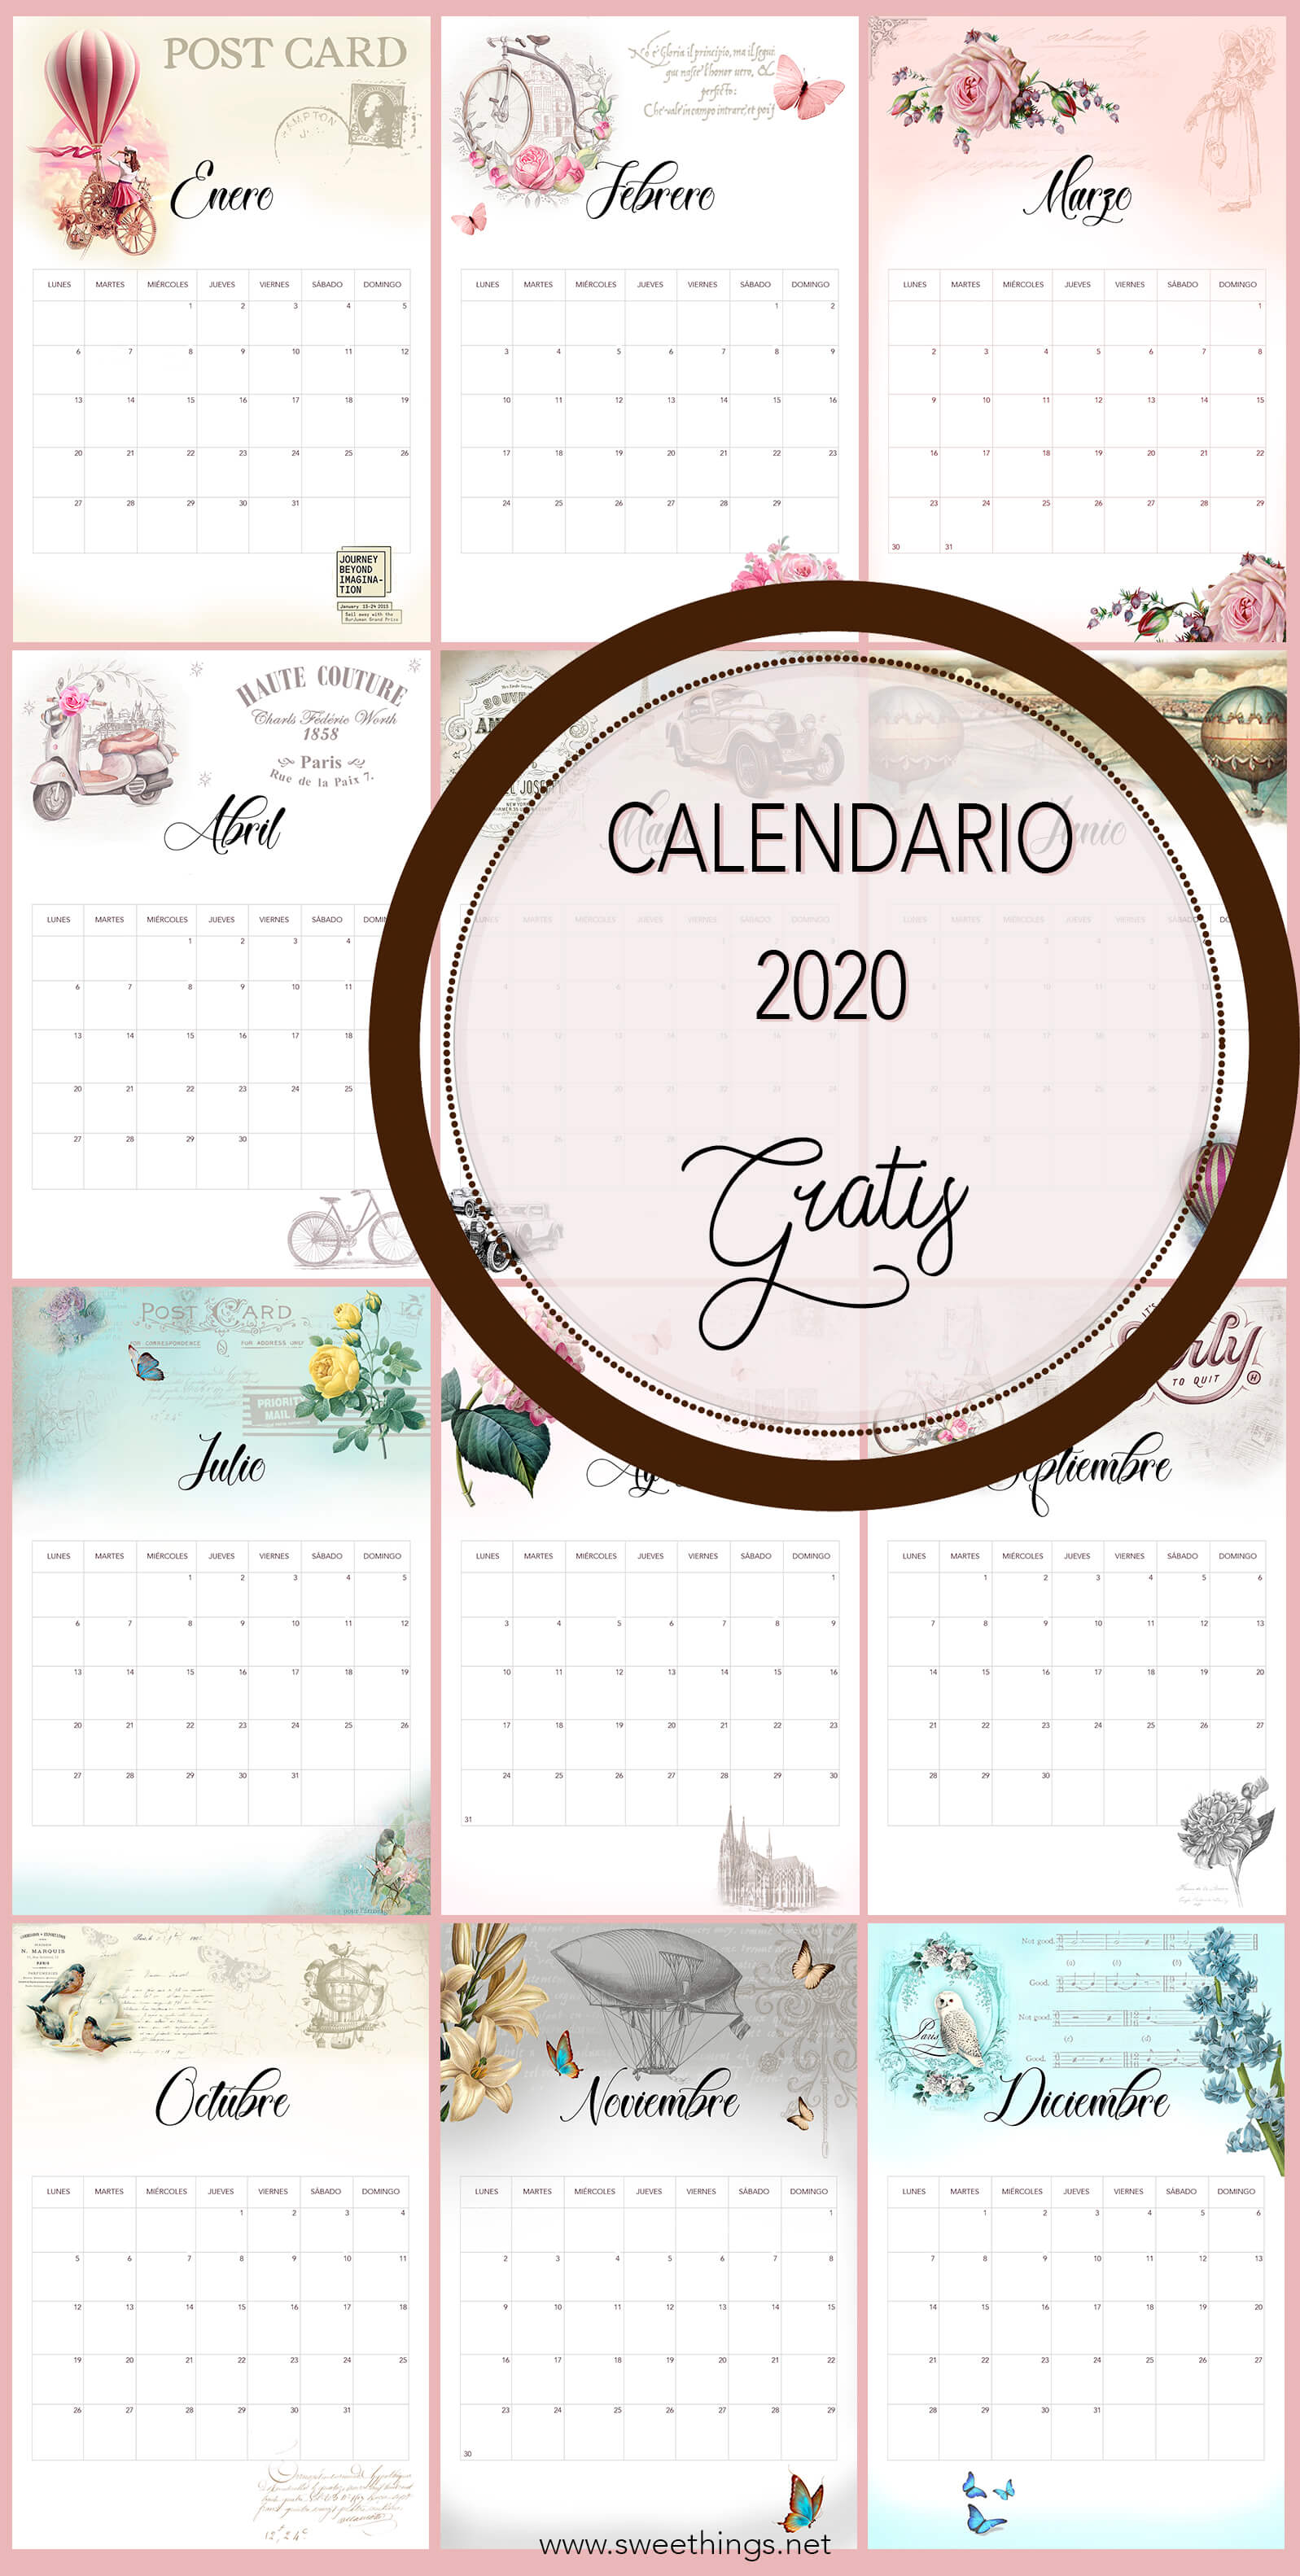 Calendario 2020 vintage gratis para descargar · Via www.sweethings.net